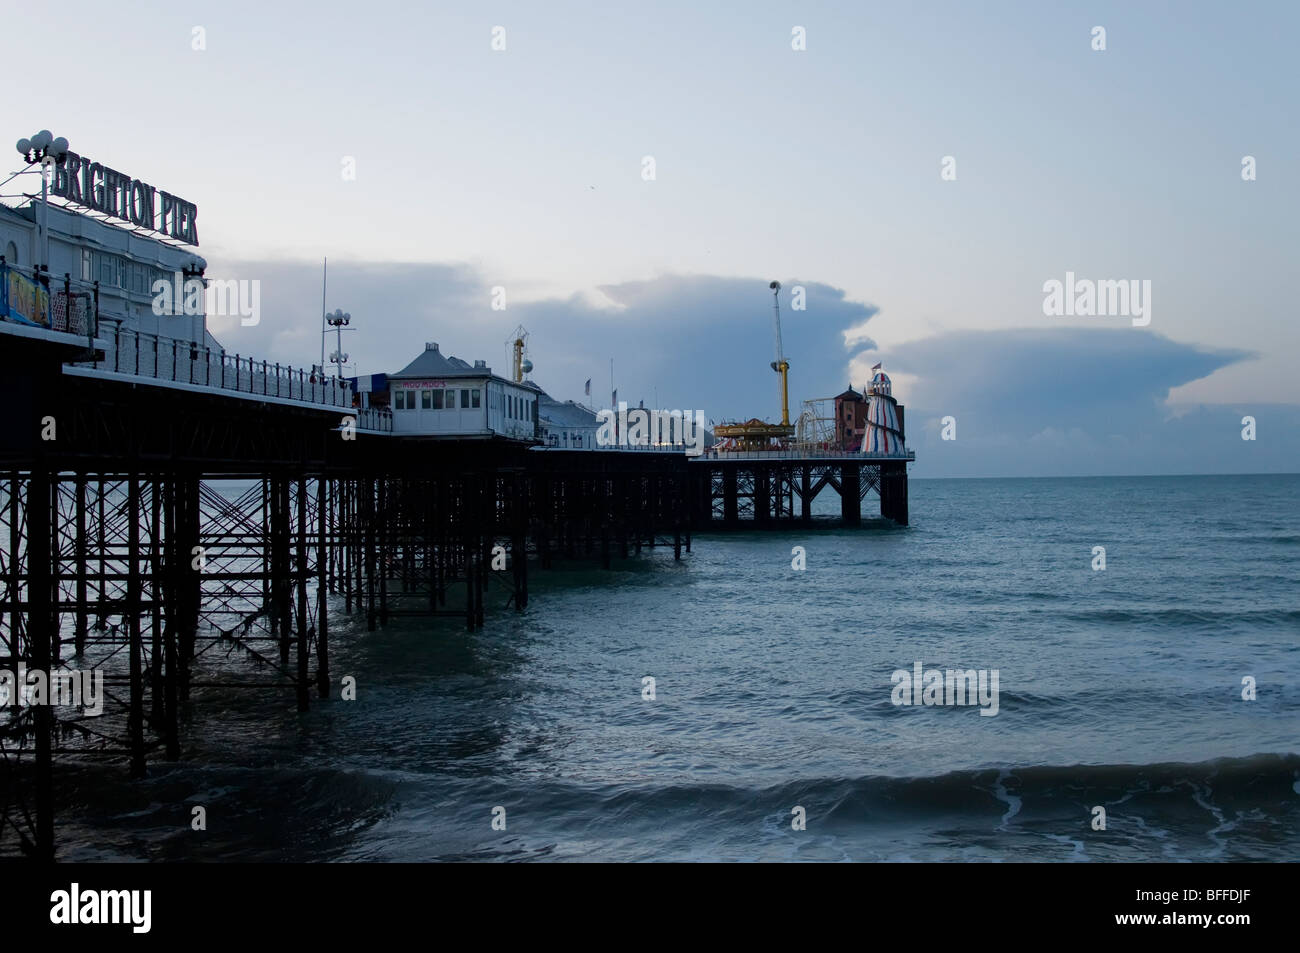 Cumulonimbus clouds over the English Channel - Stock Image